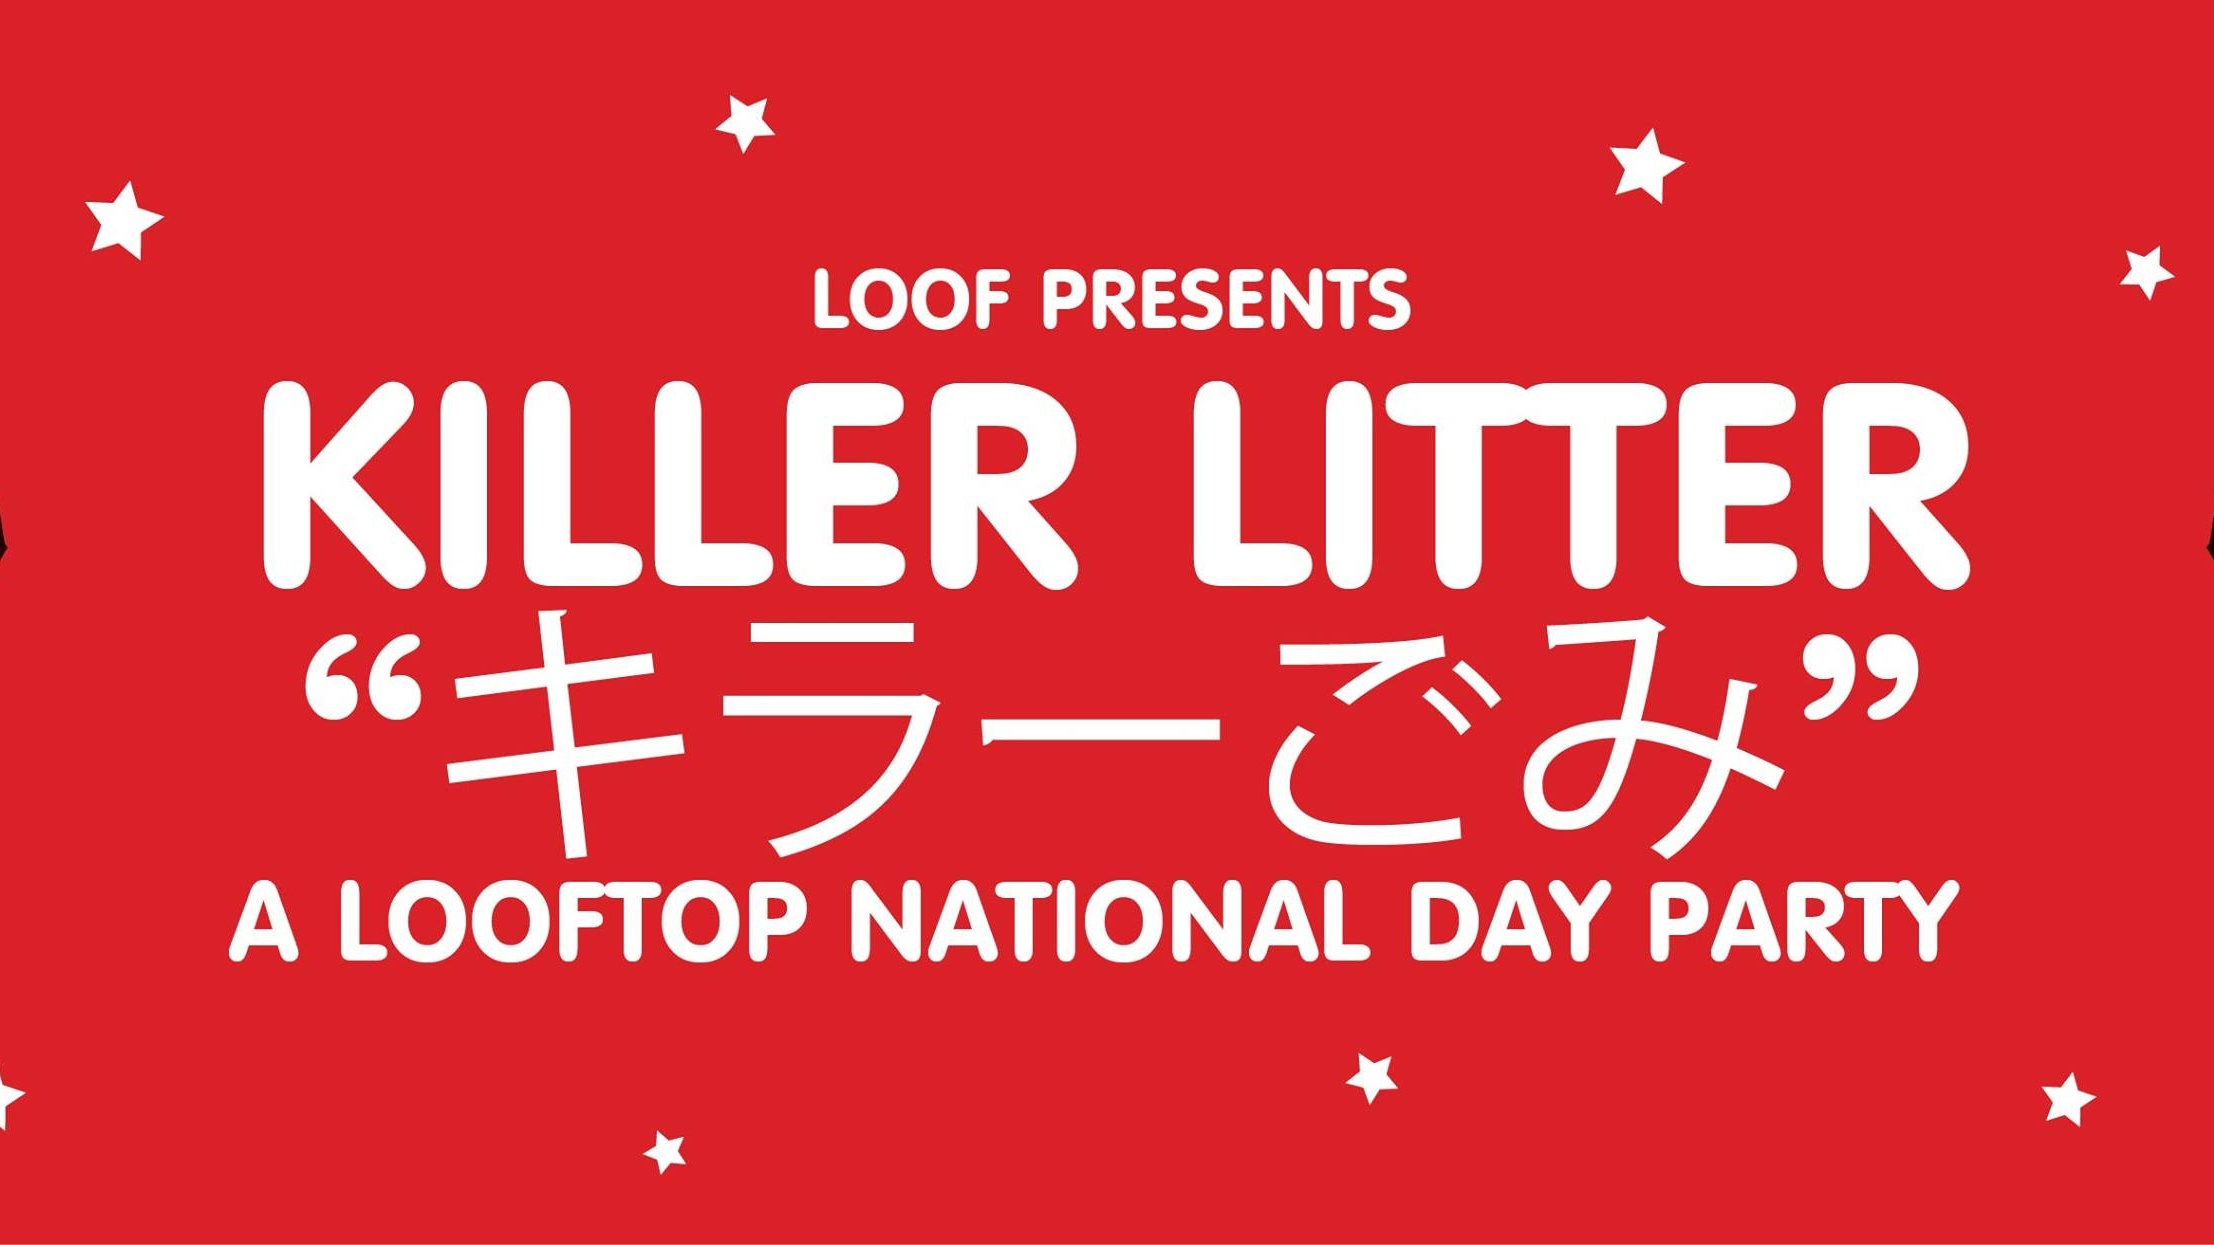 KILLER LITTER ✱ A Looftop National Day Party